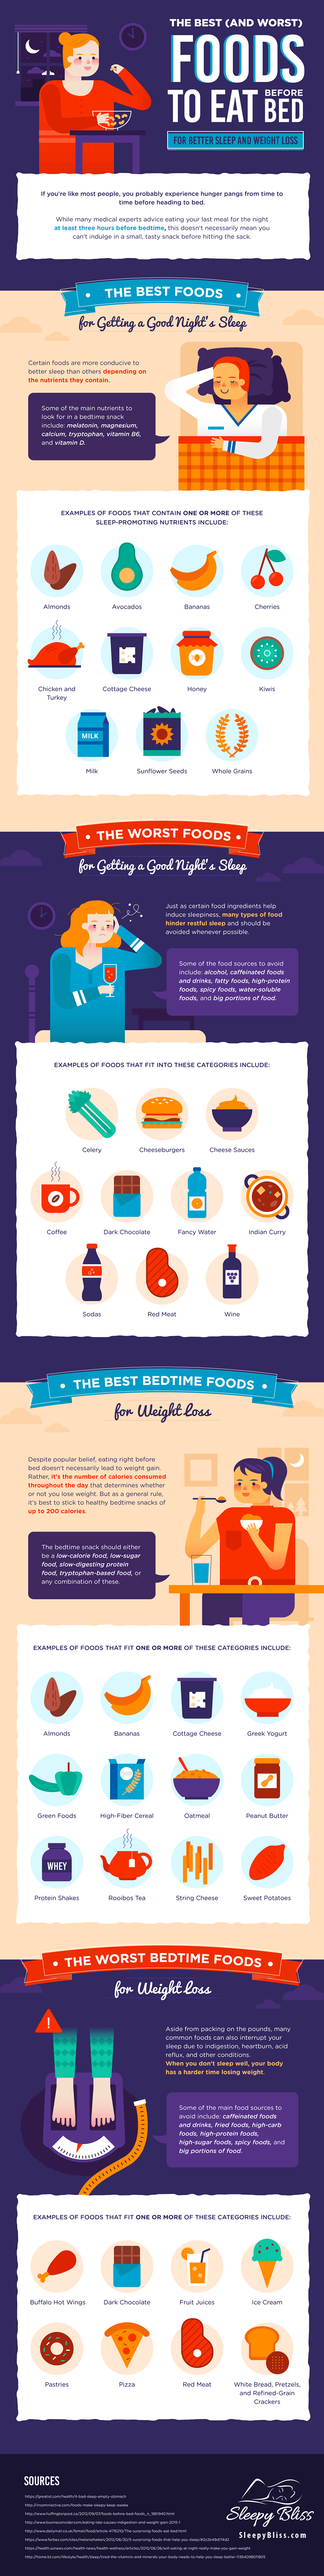 The Best (And Worst) Foods To Eat Before Bed | Sleepy Bliss